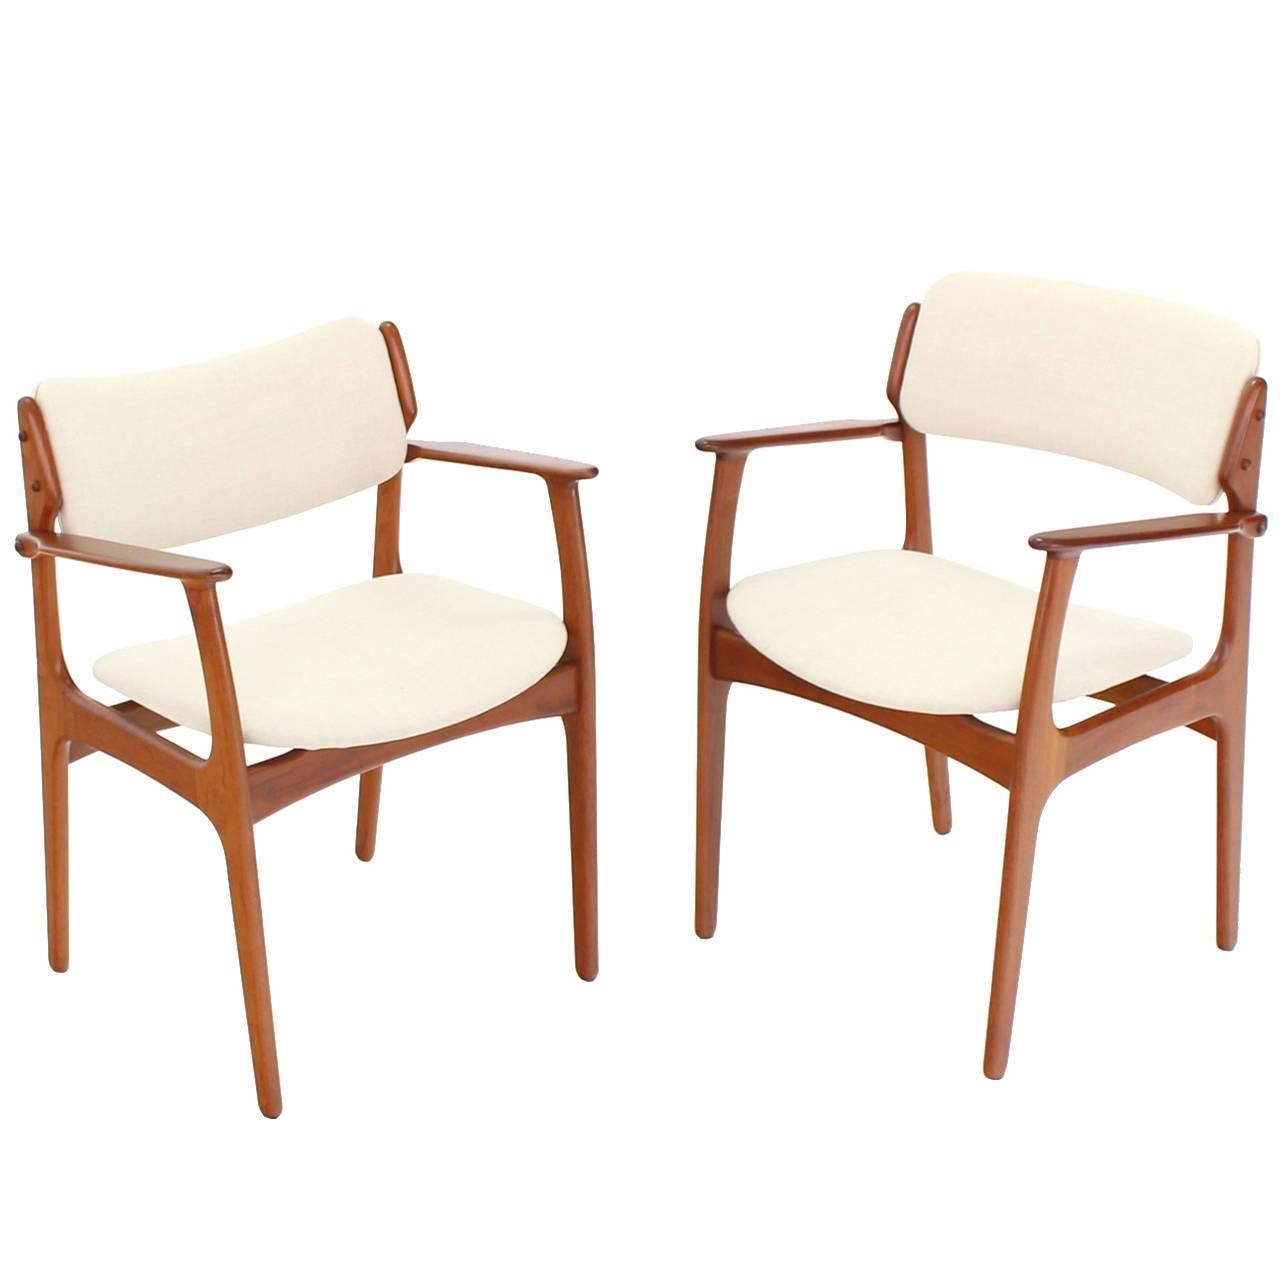 of two danish mid century modern arm dining chairs for sale at 1stdibs